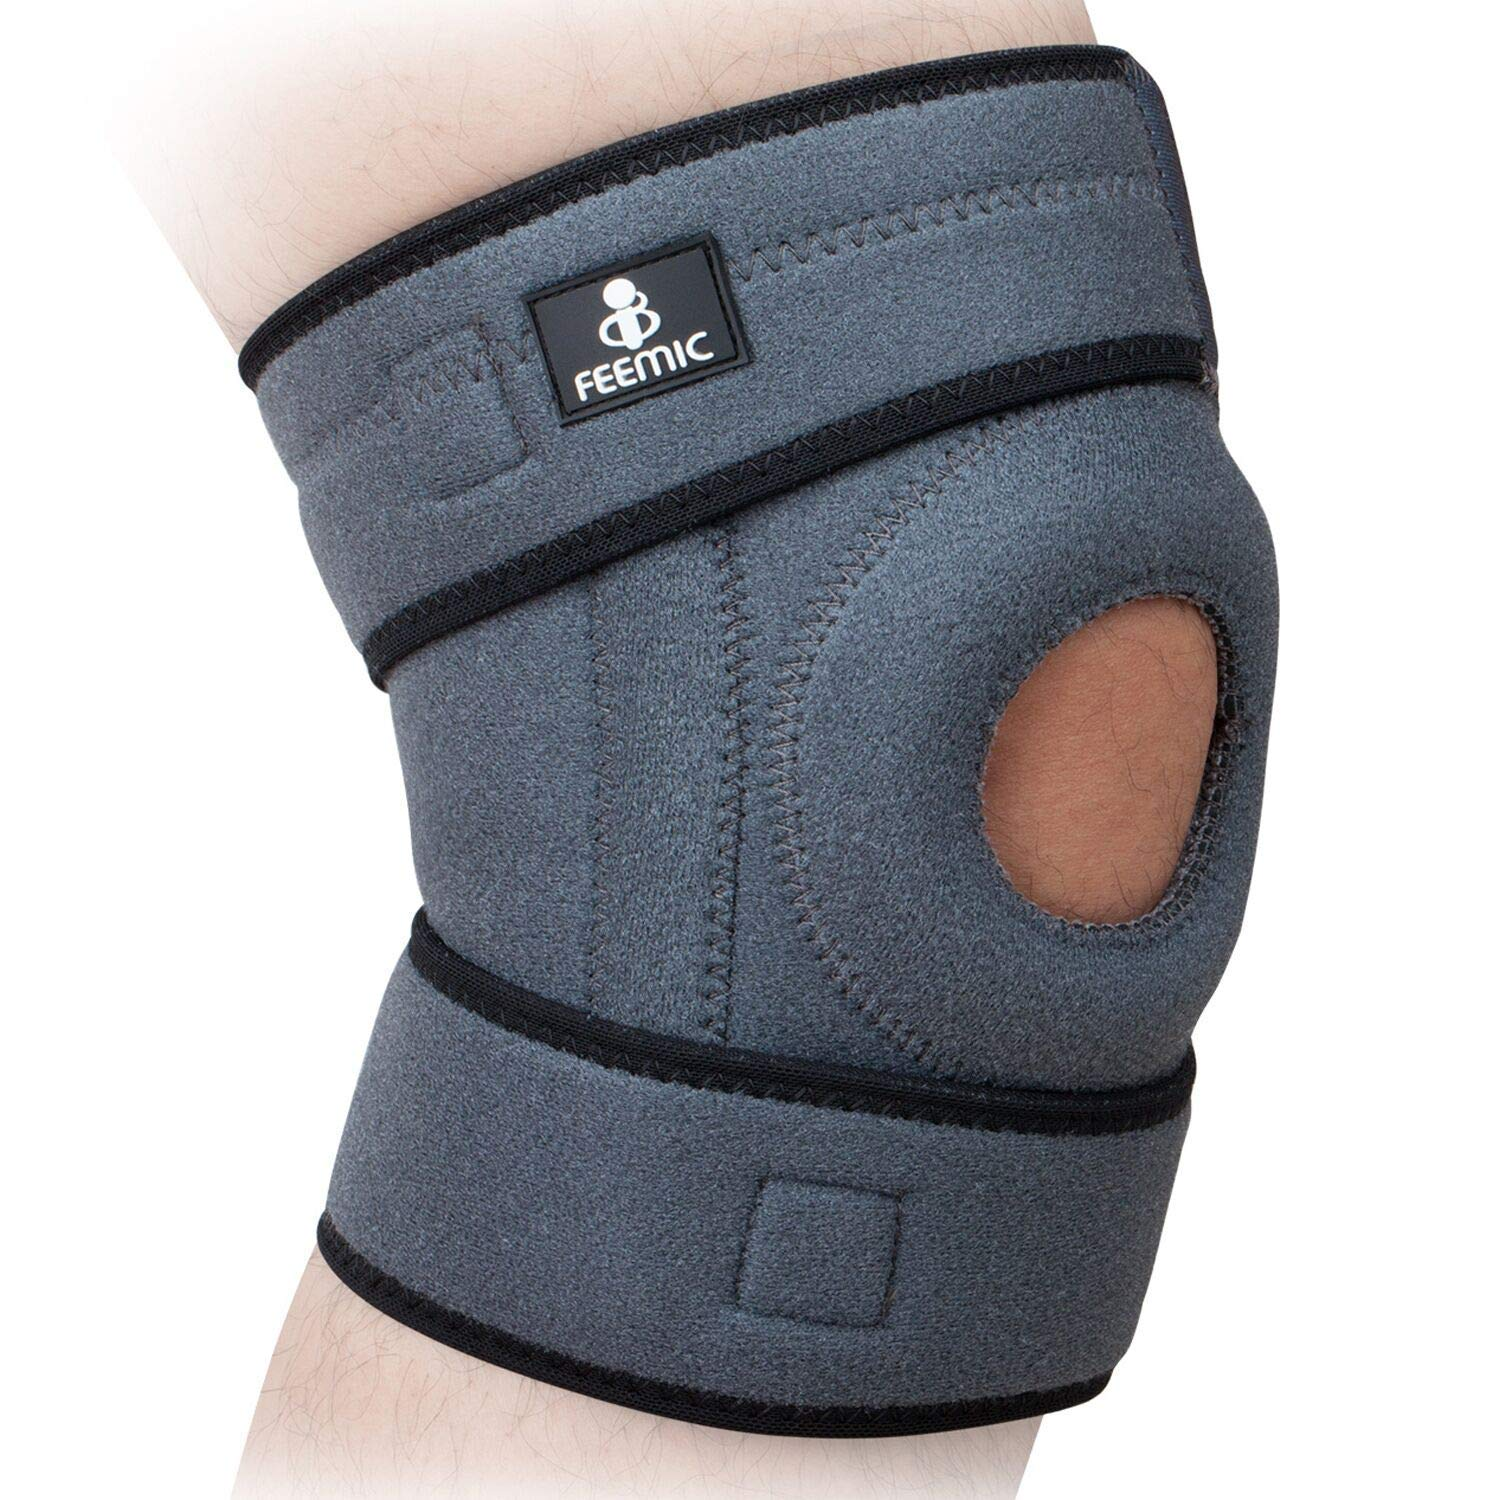 3bf4b26119 BSUEA Knee Brace Support with Adjustable Strapping Non-Slip Breathable  Sleeve. Meniscus Tear Support, Open-Patella Stabilizer Knee Brace for  Running, ...